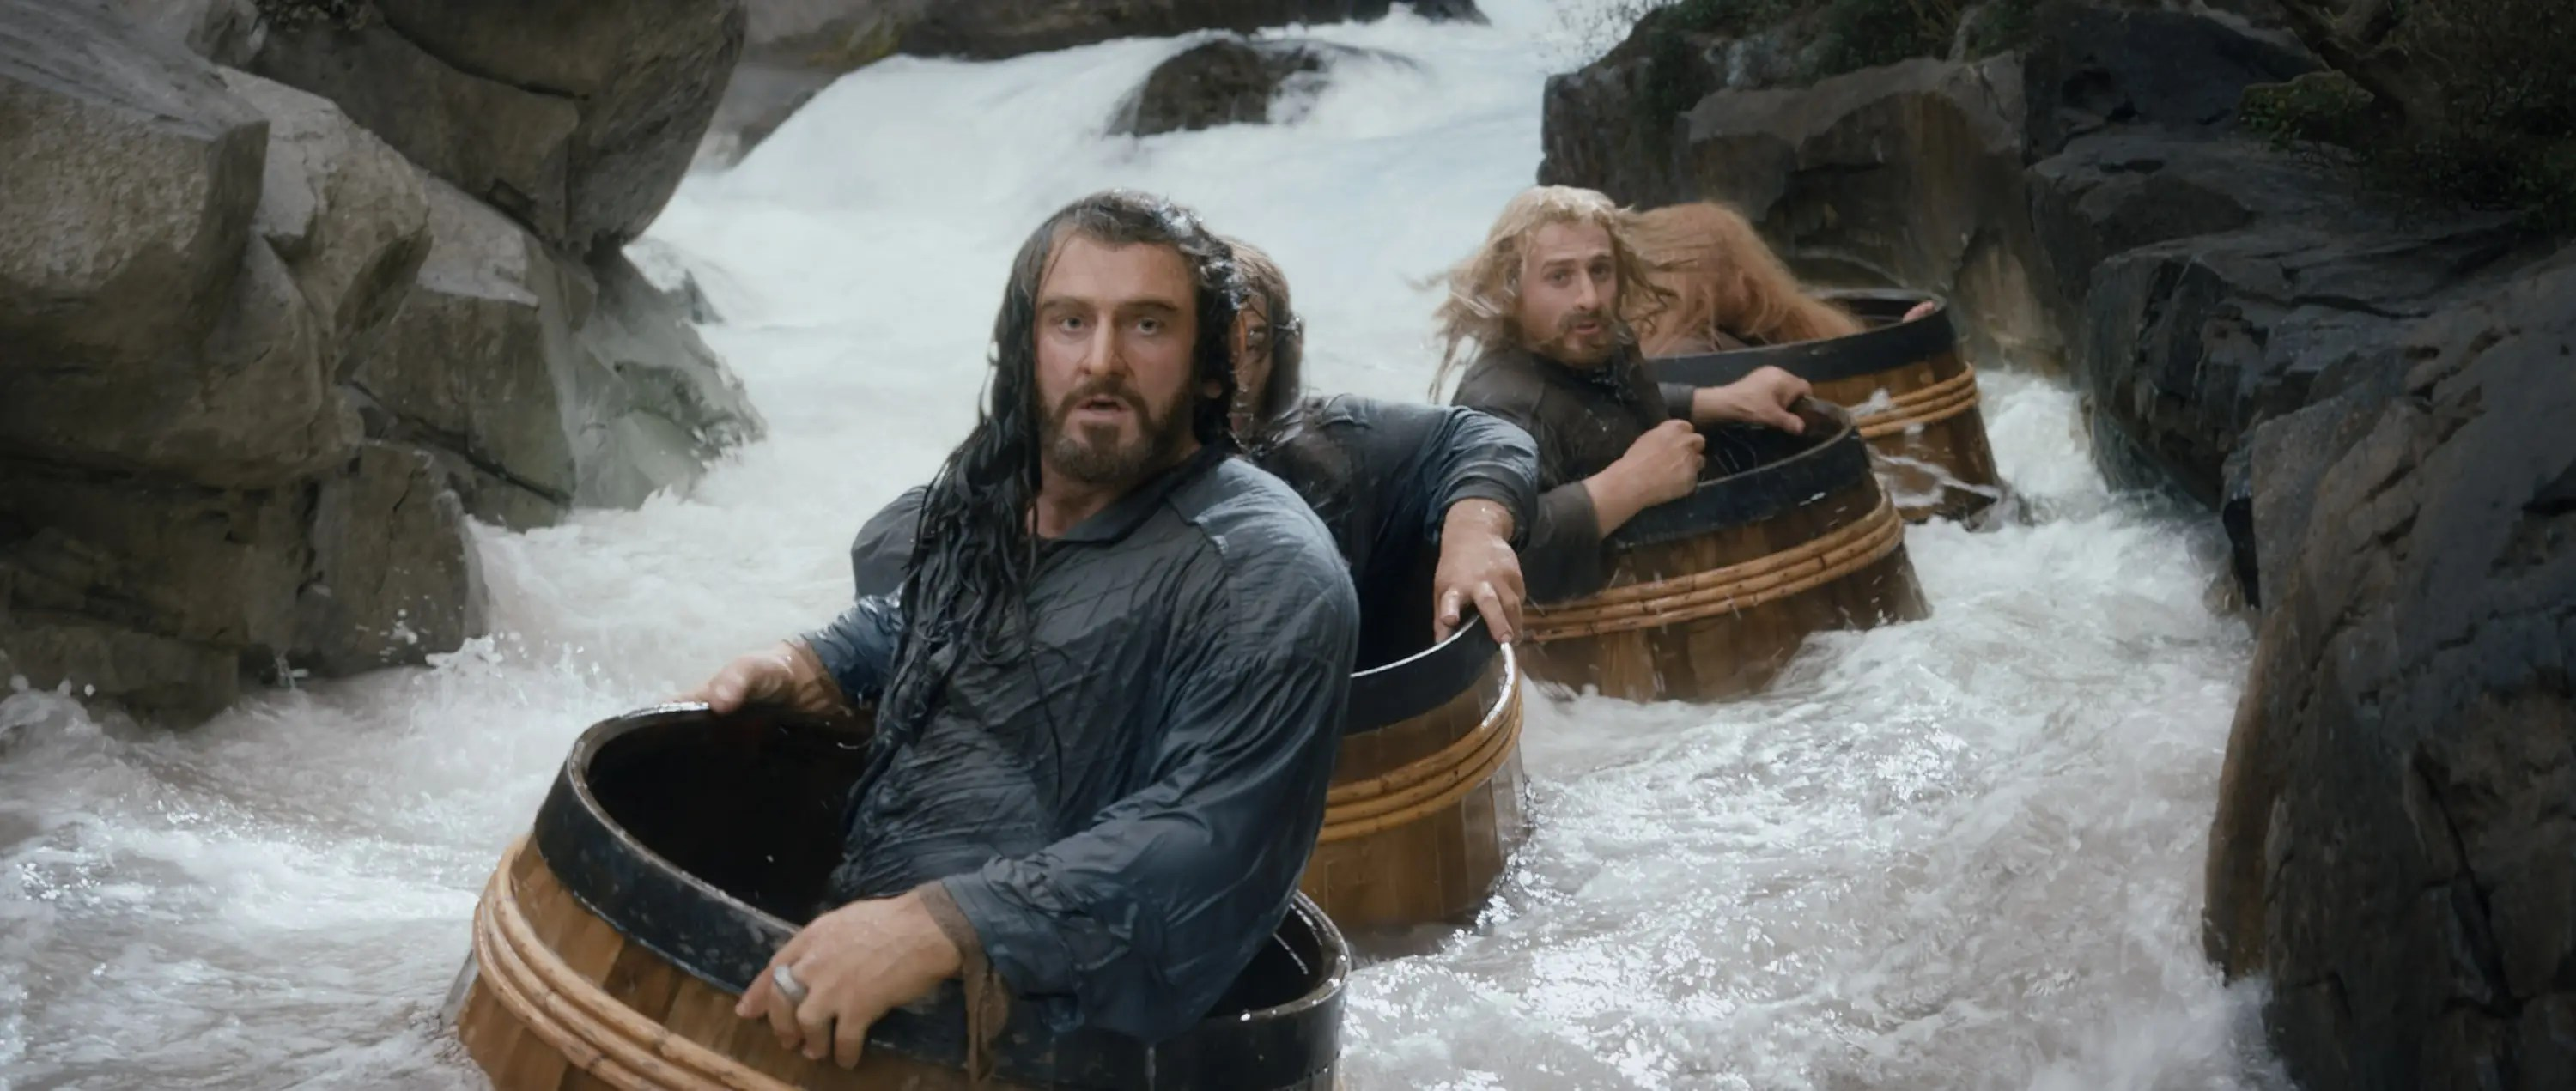 the hobbit the desolation of smaug dwarves barrels